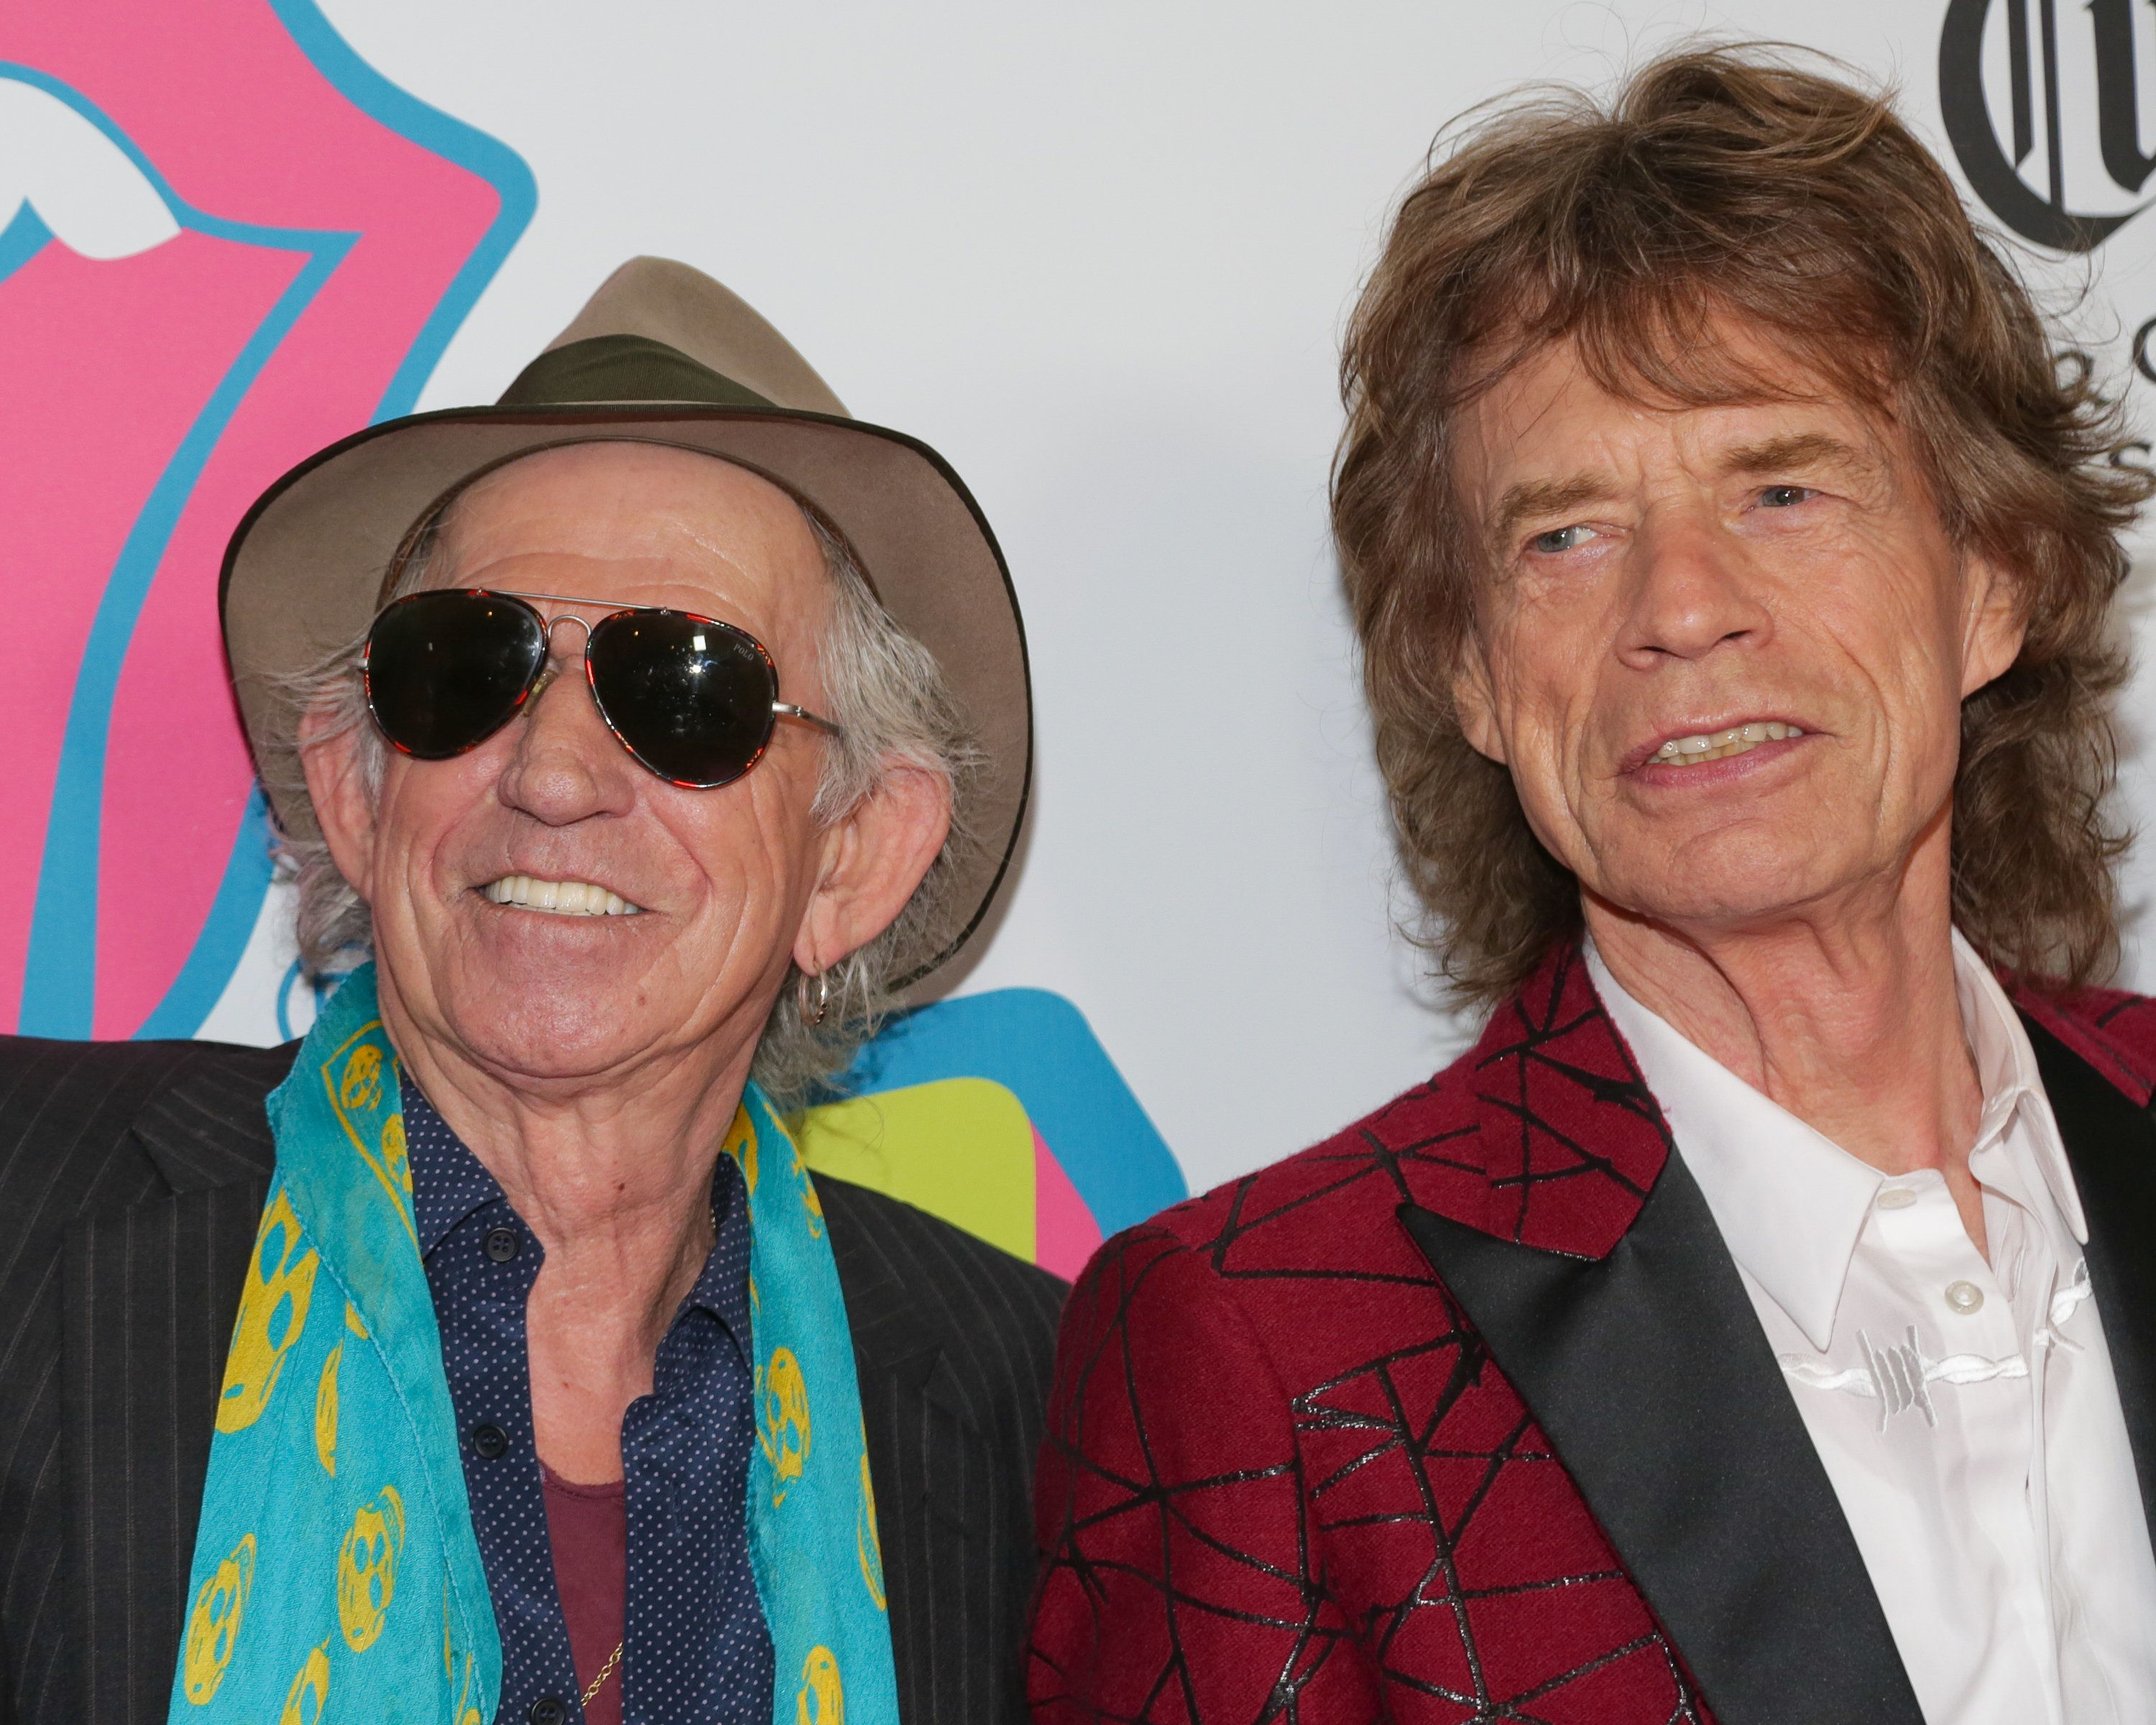 Richards apologizes for telling Jagger, 'time for the snip'